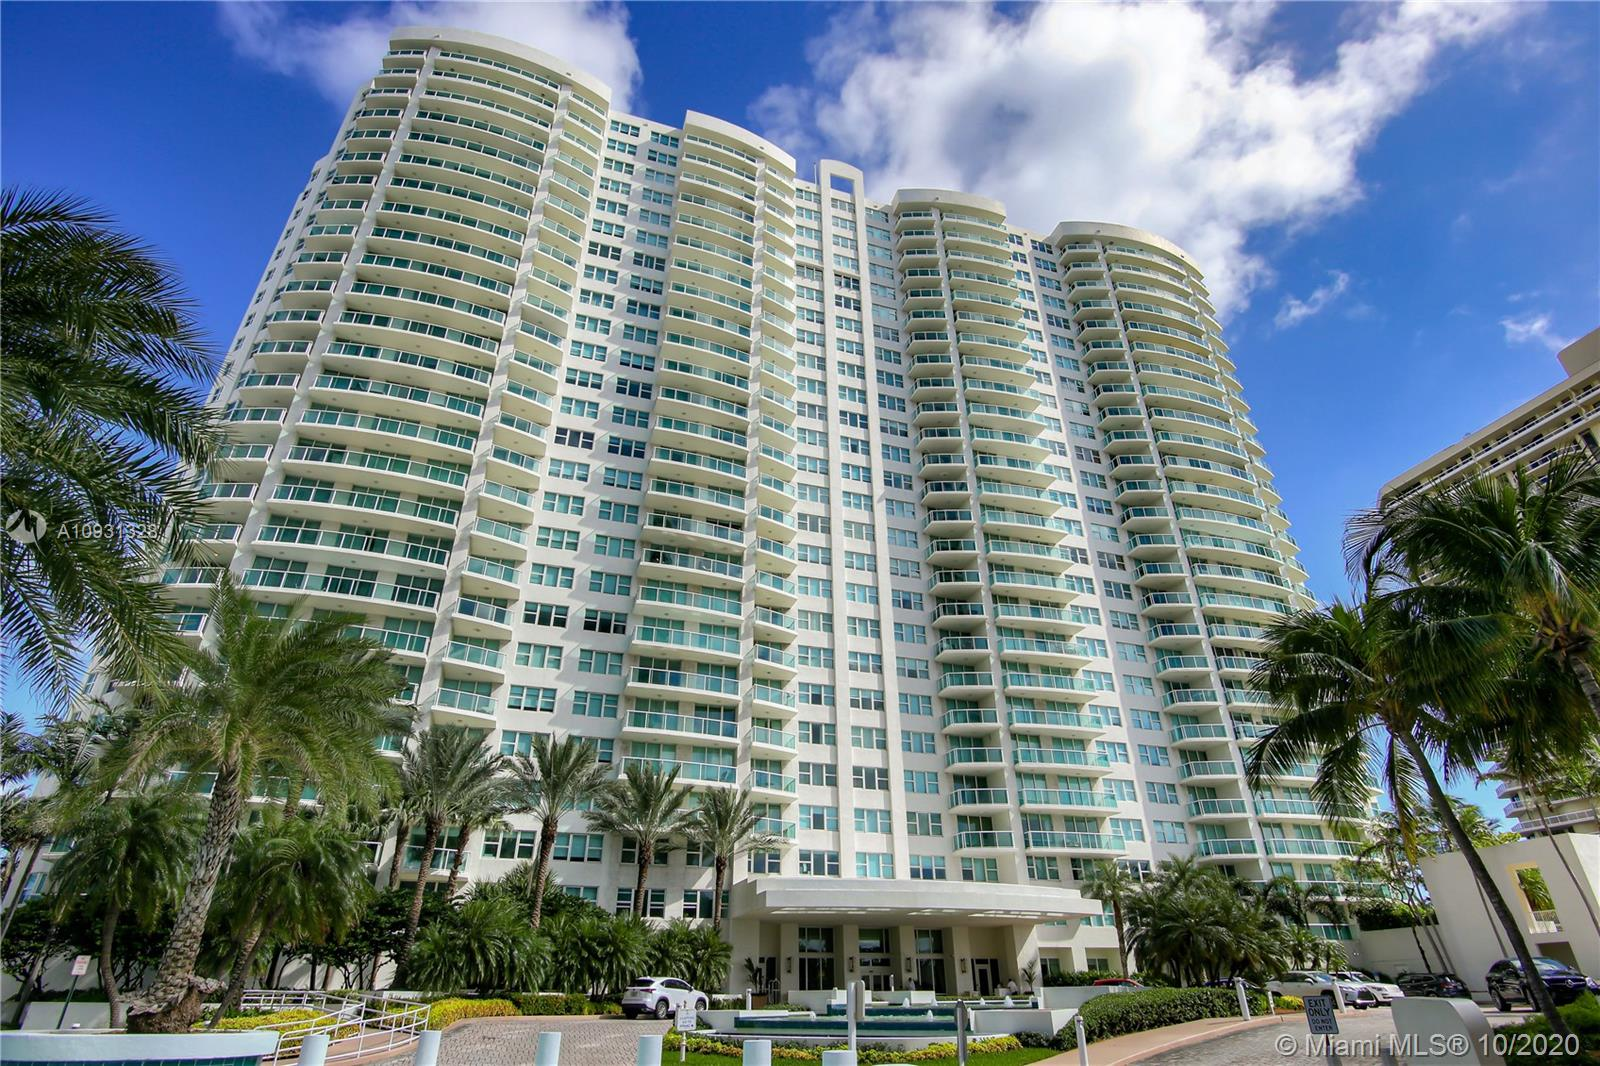 Photo of 20201 Country Club Dr #2407, Aventura, Florida, 33180 - Aerobics and Zumba area.